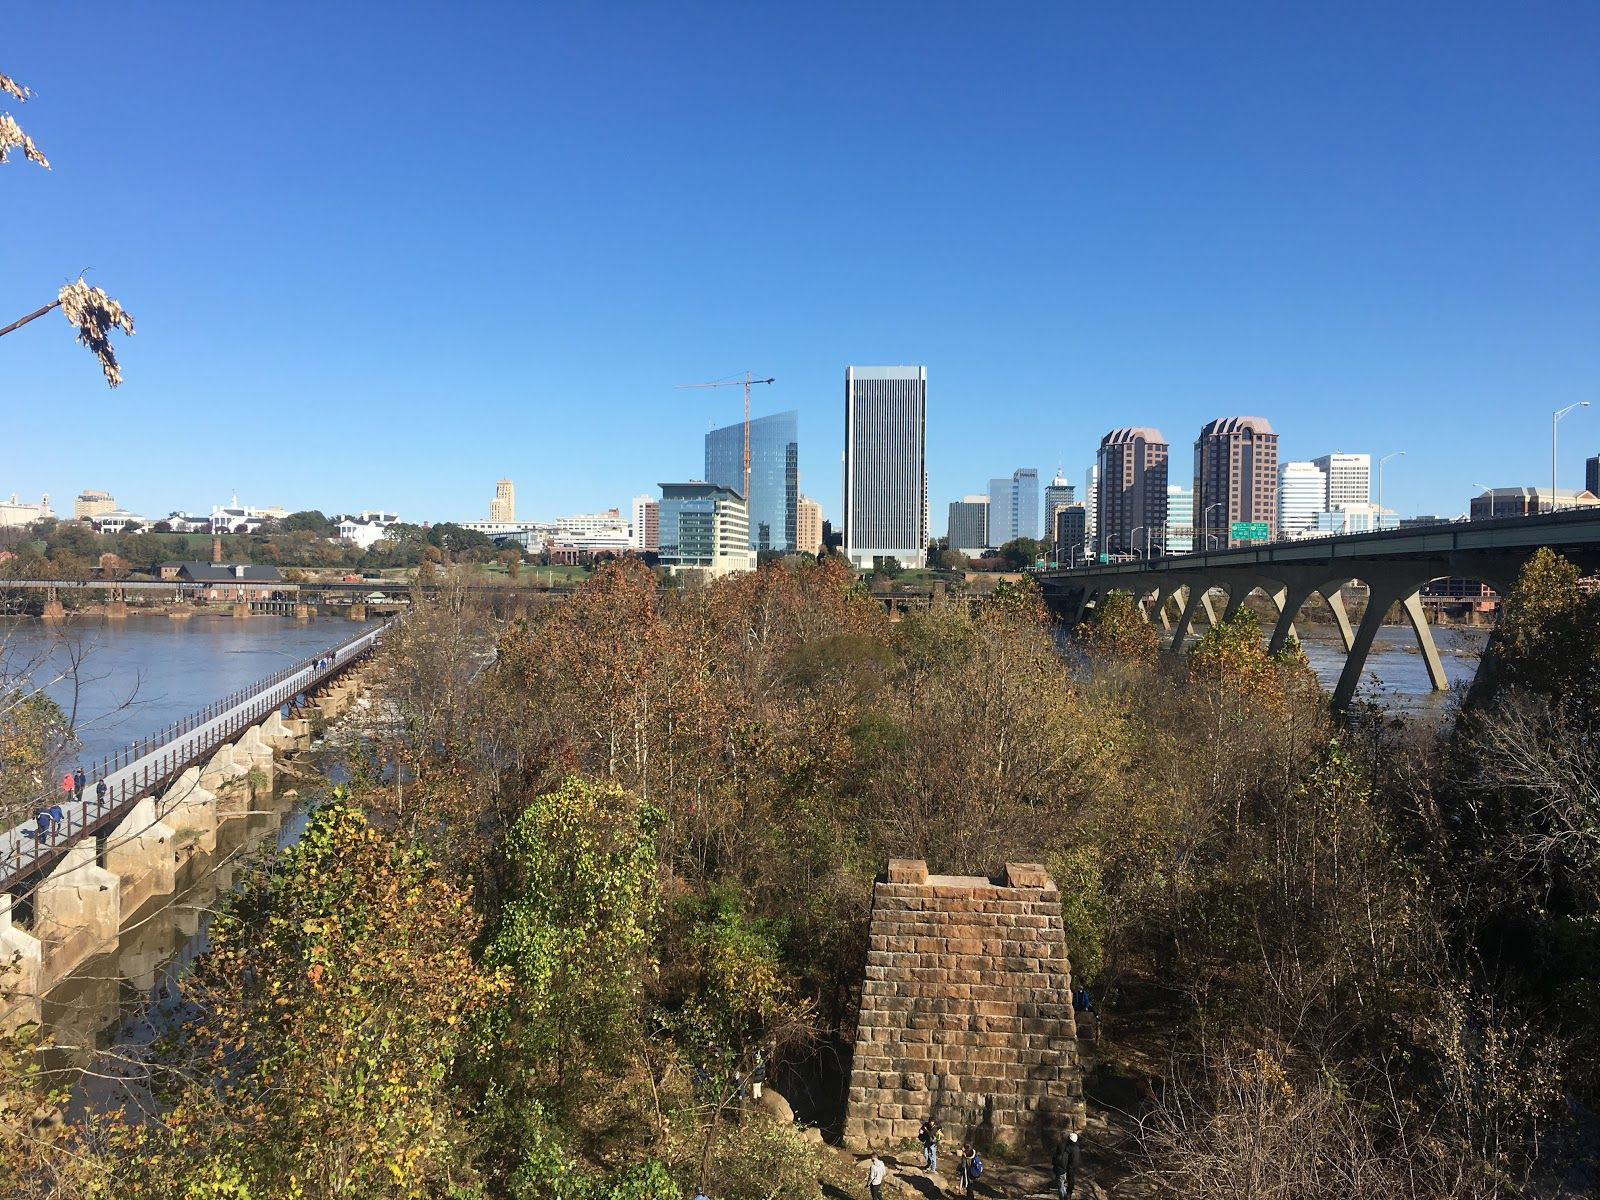 Richmond Skyline from the south side of the James River